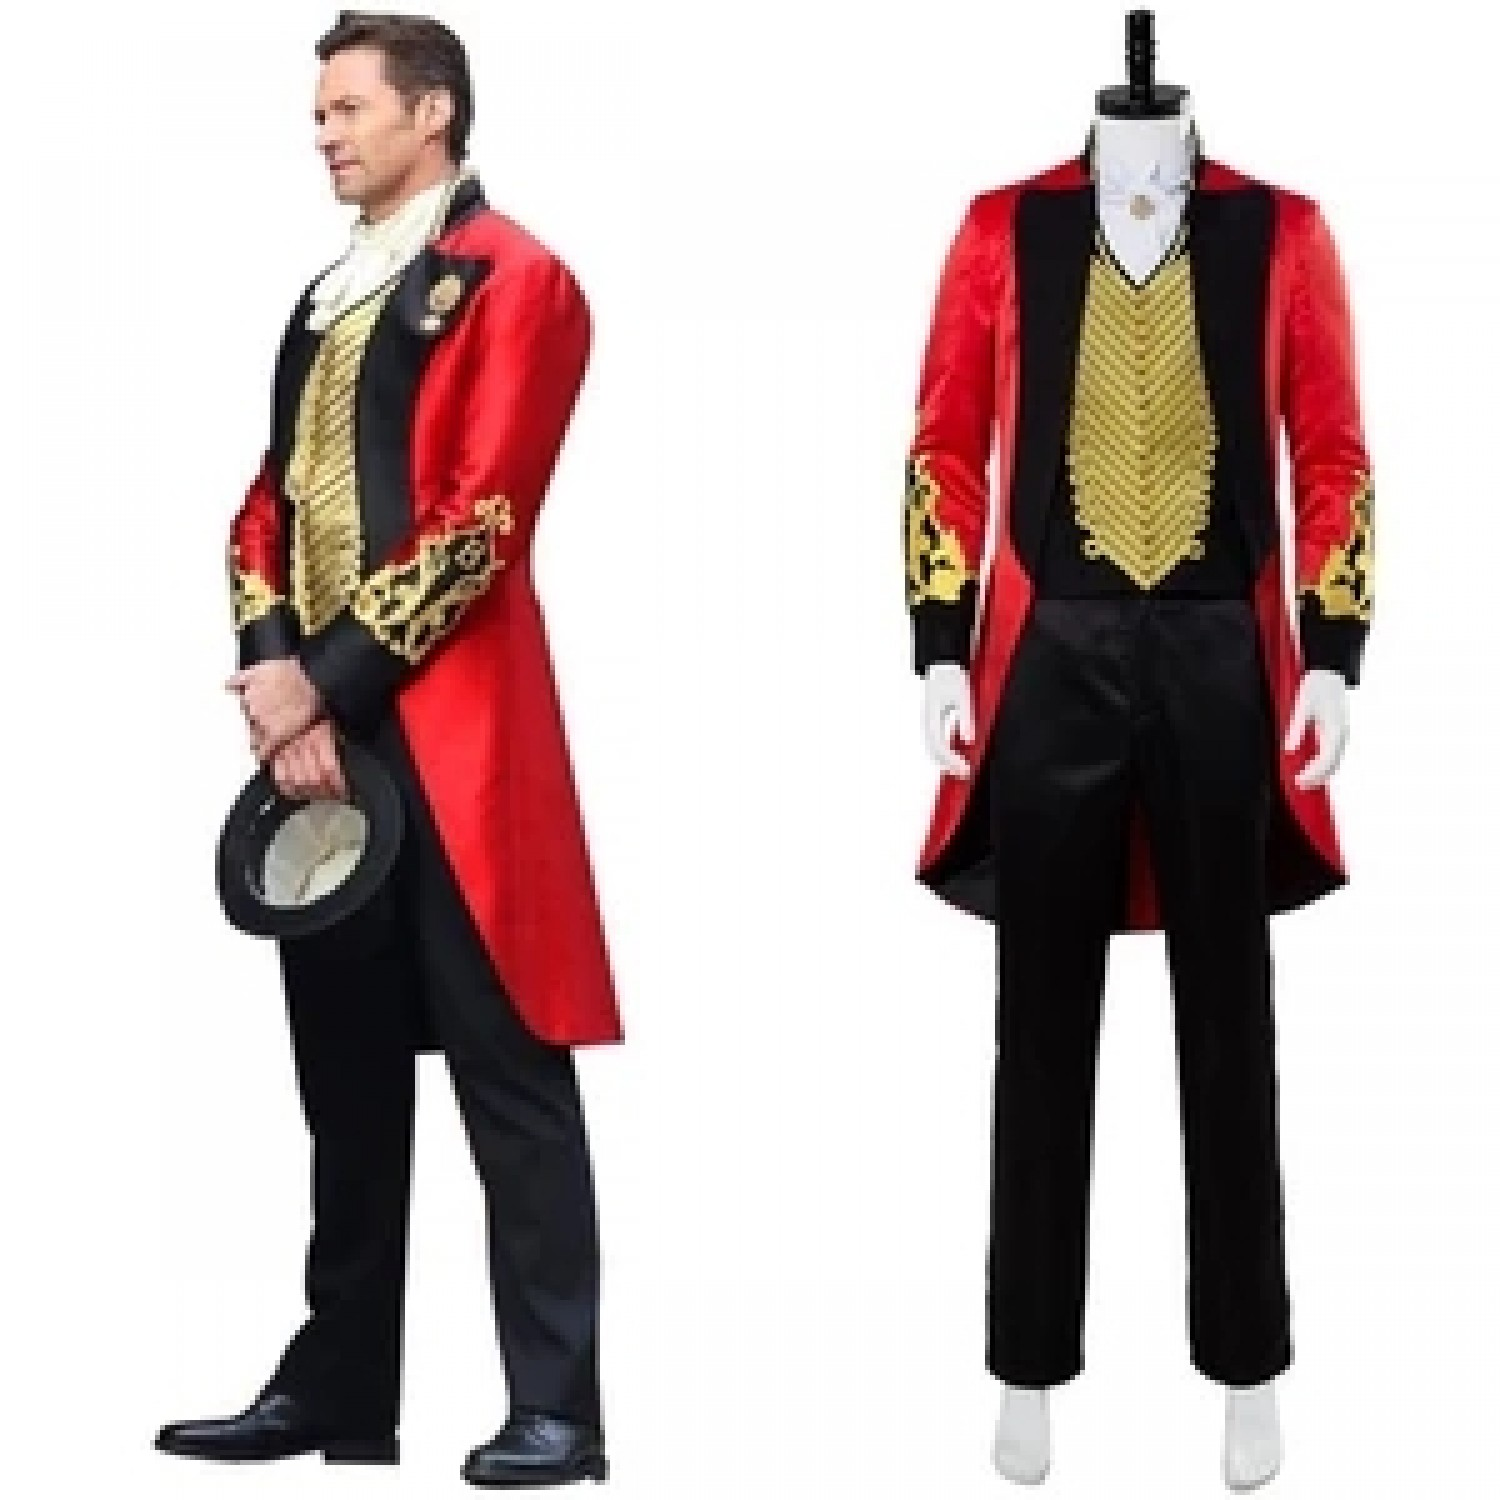 The Greatest Showman P.T. Barnum Full Set Outfit Cosplay Custome